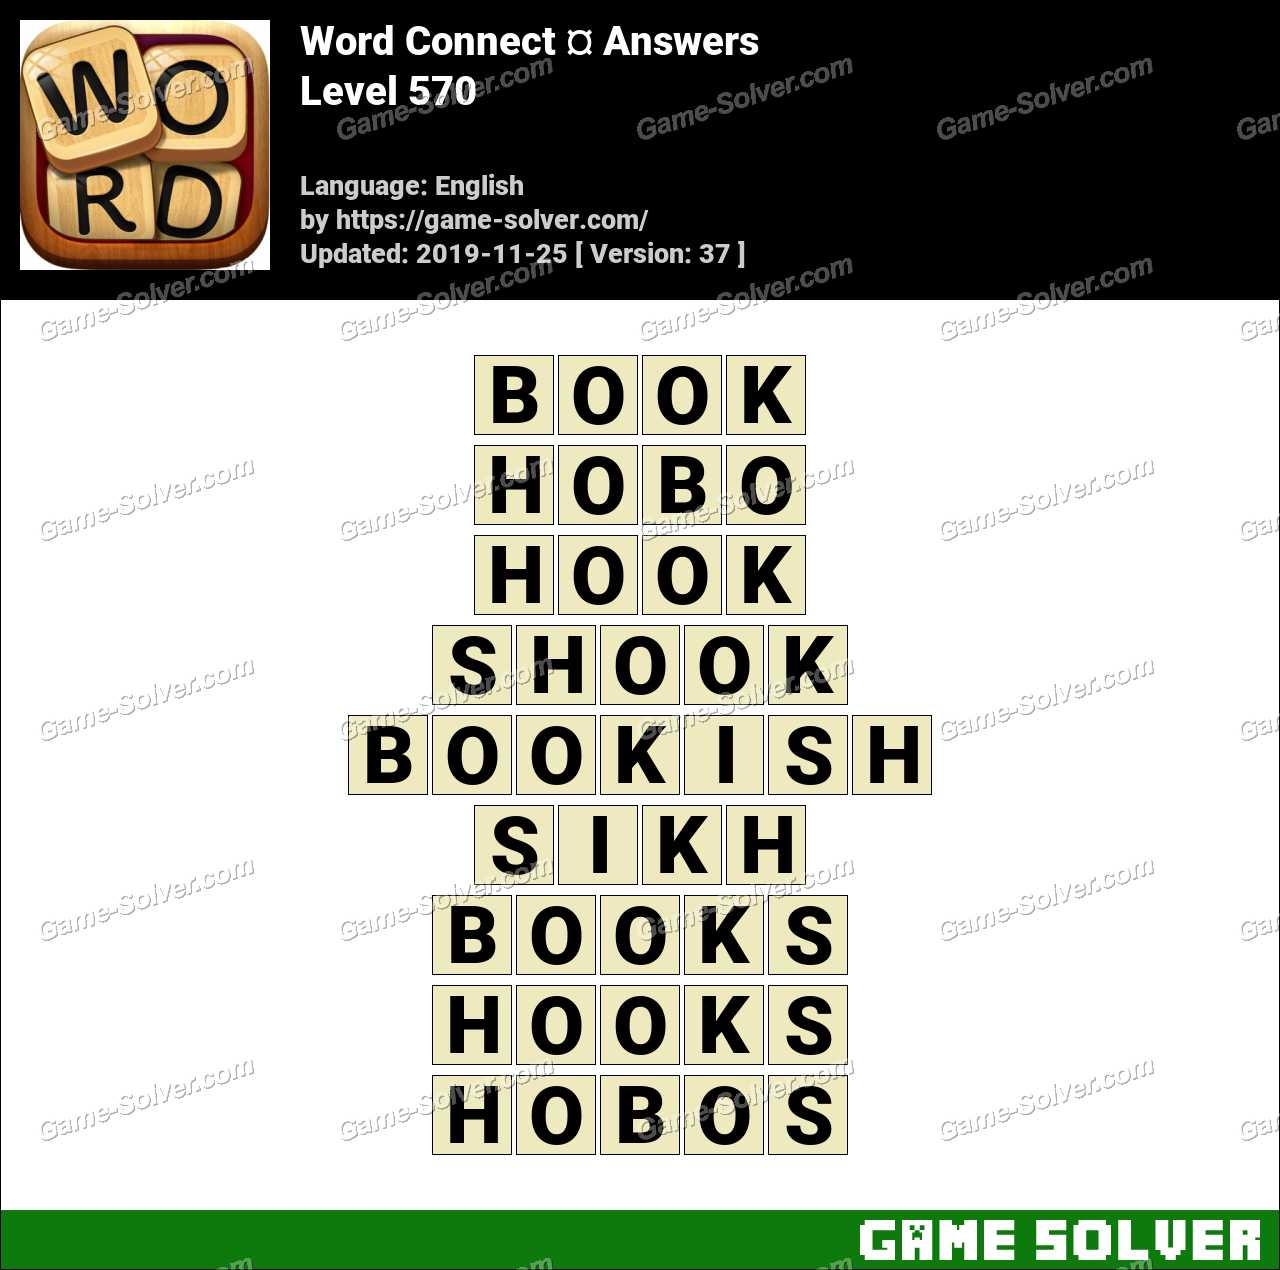 Word Connect Level 570 Answers